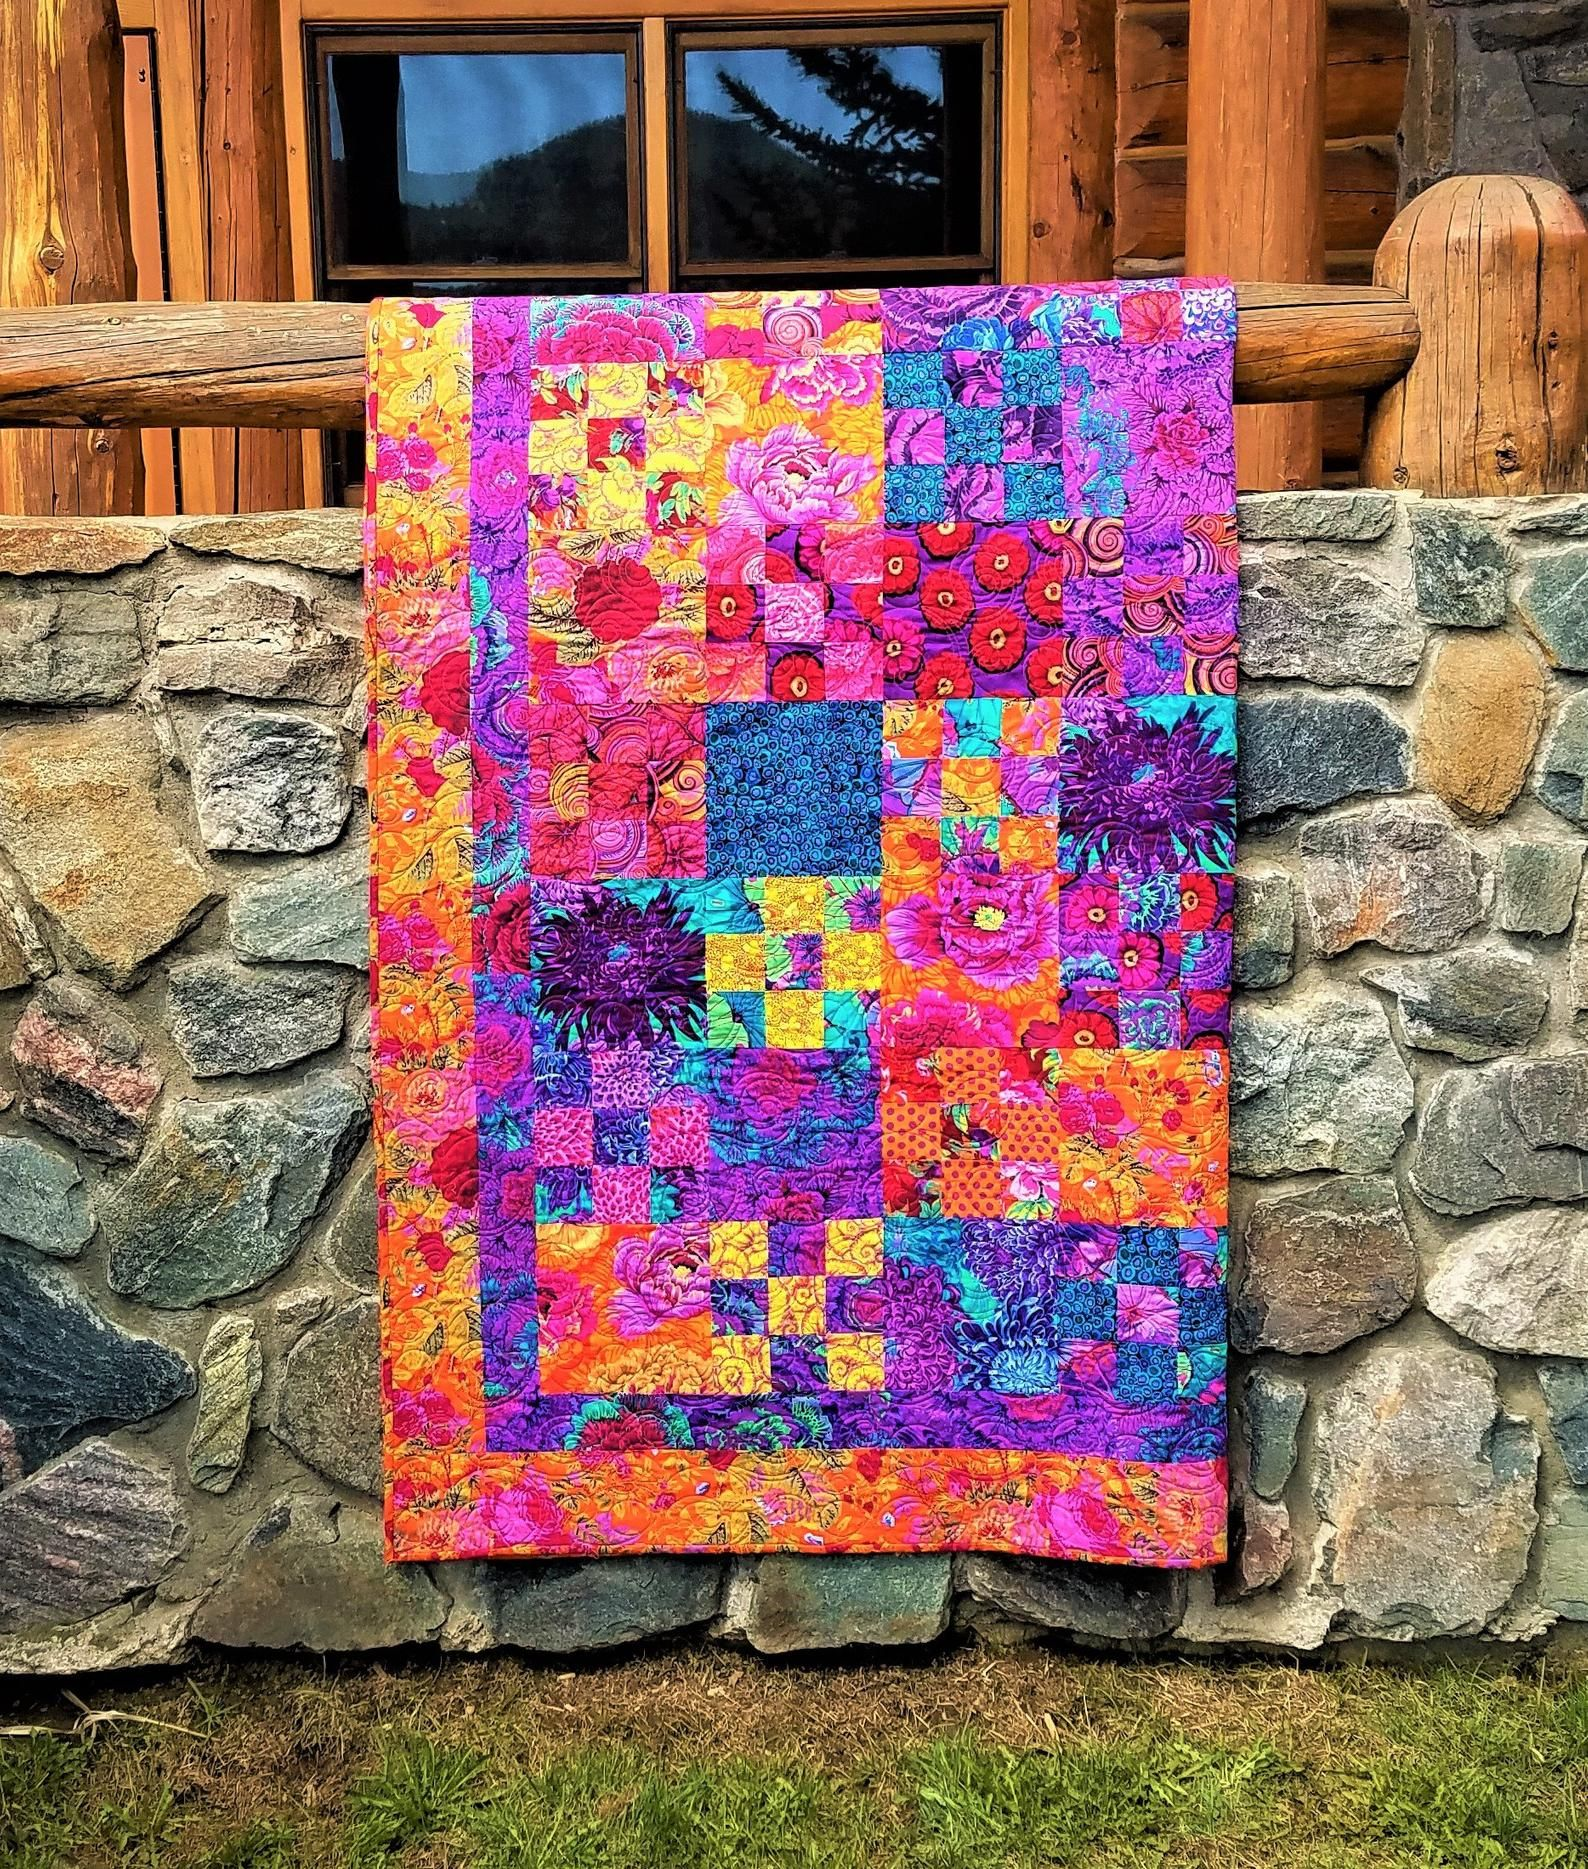 Ode To The Sunset Kaffe Fassett Inspired Quilt Embolded By Etsy Quilts Colorful Quilts Quilt Patterns